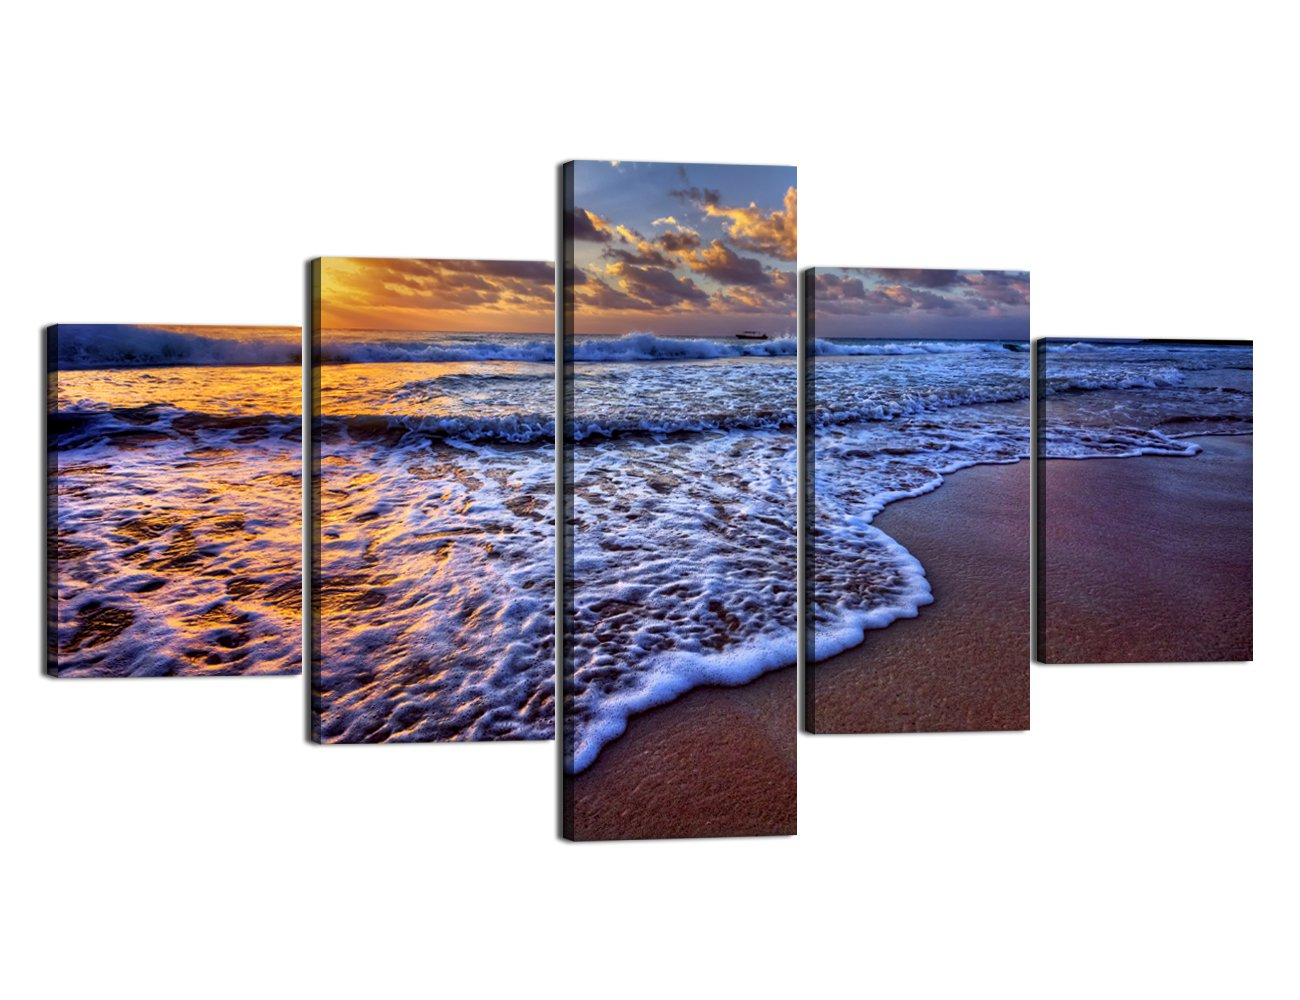 Ocean_19 Large Size Scene of Sea Waves Palm Tree Landscape Picture Modern Painting on Canvas 5 Piece Framed Wall Art for Living Room Bedroom Kitchen Home Decor Stretched Gallery Canvas Wrap Giclee Print (60''W x 32''H)